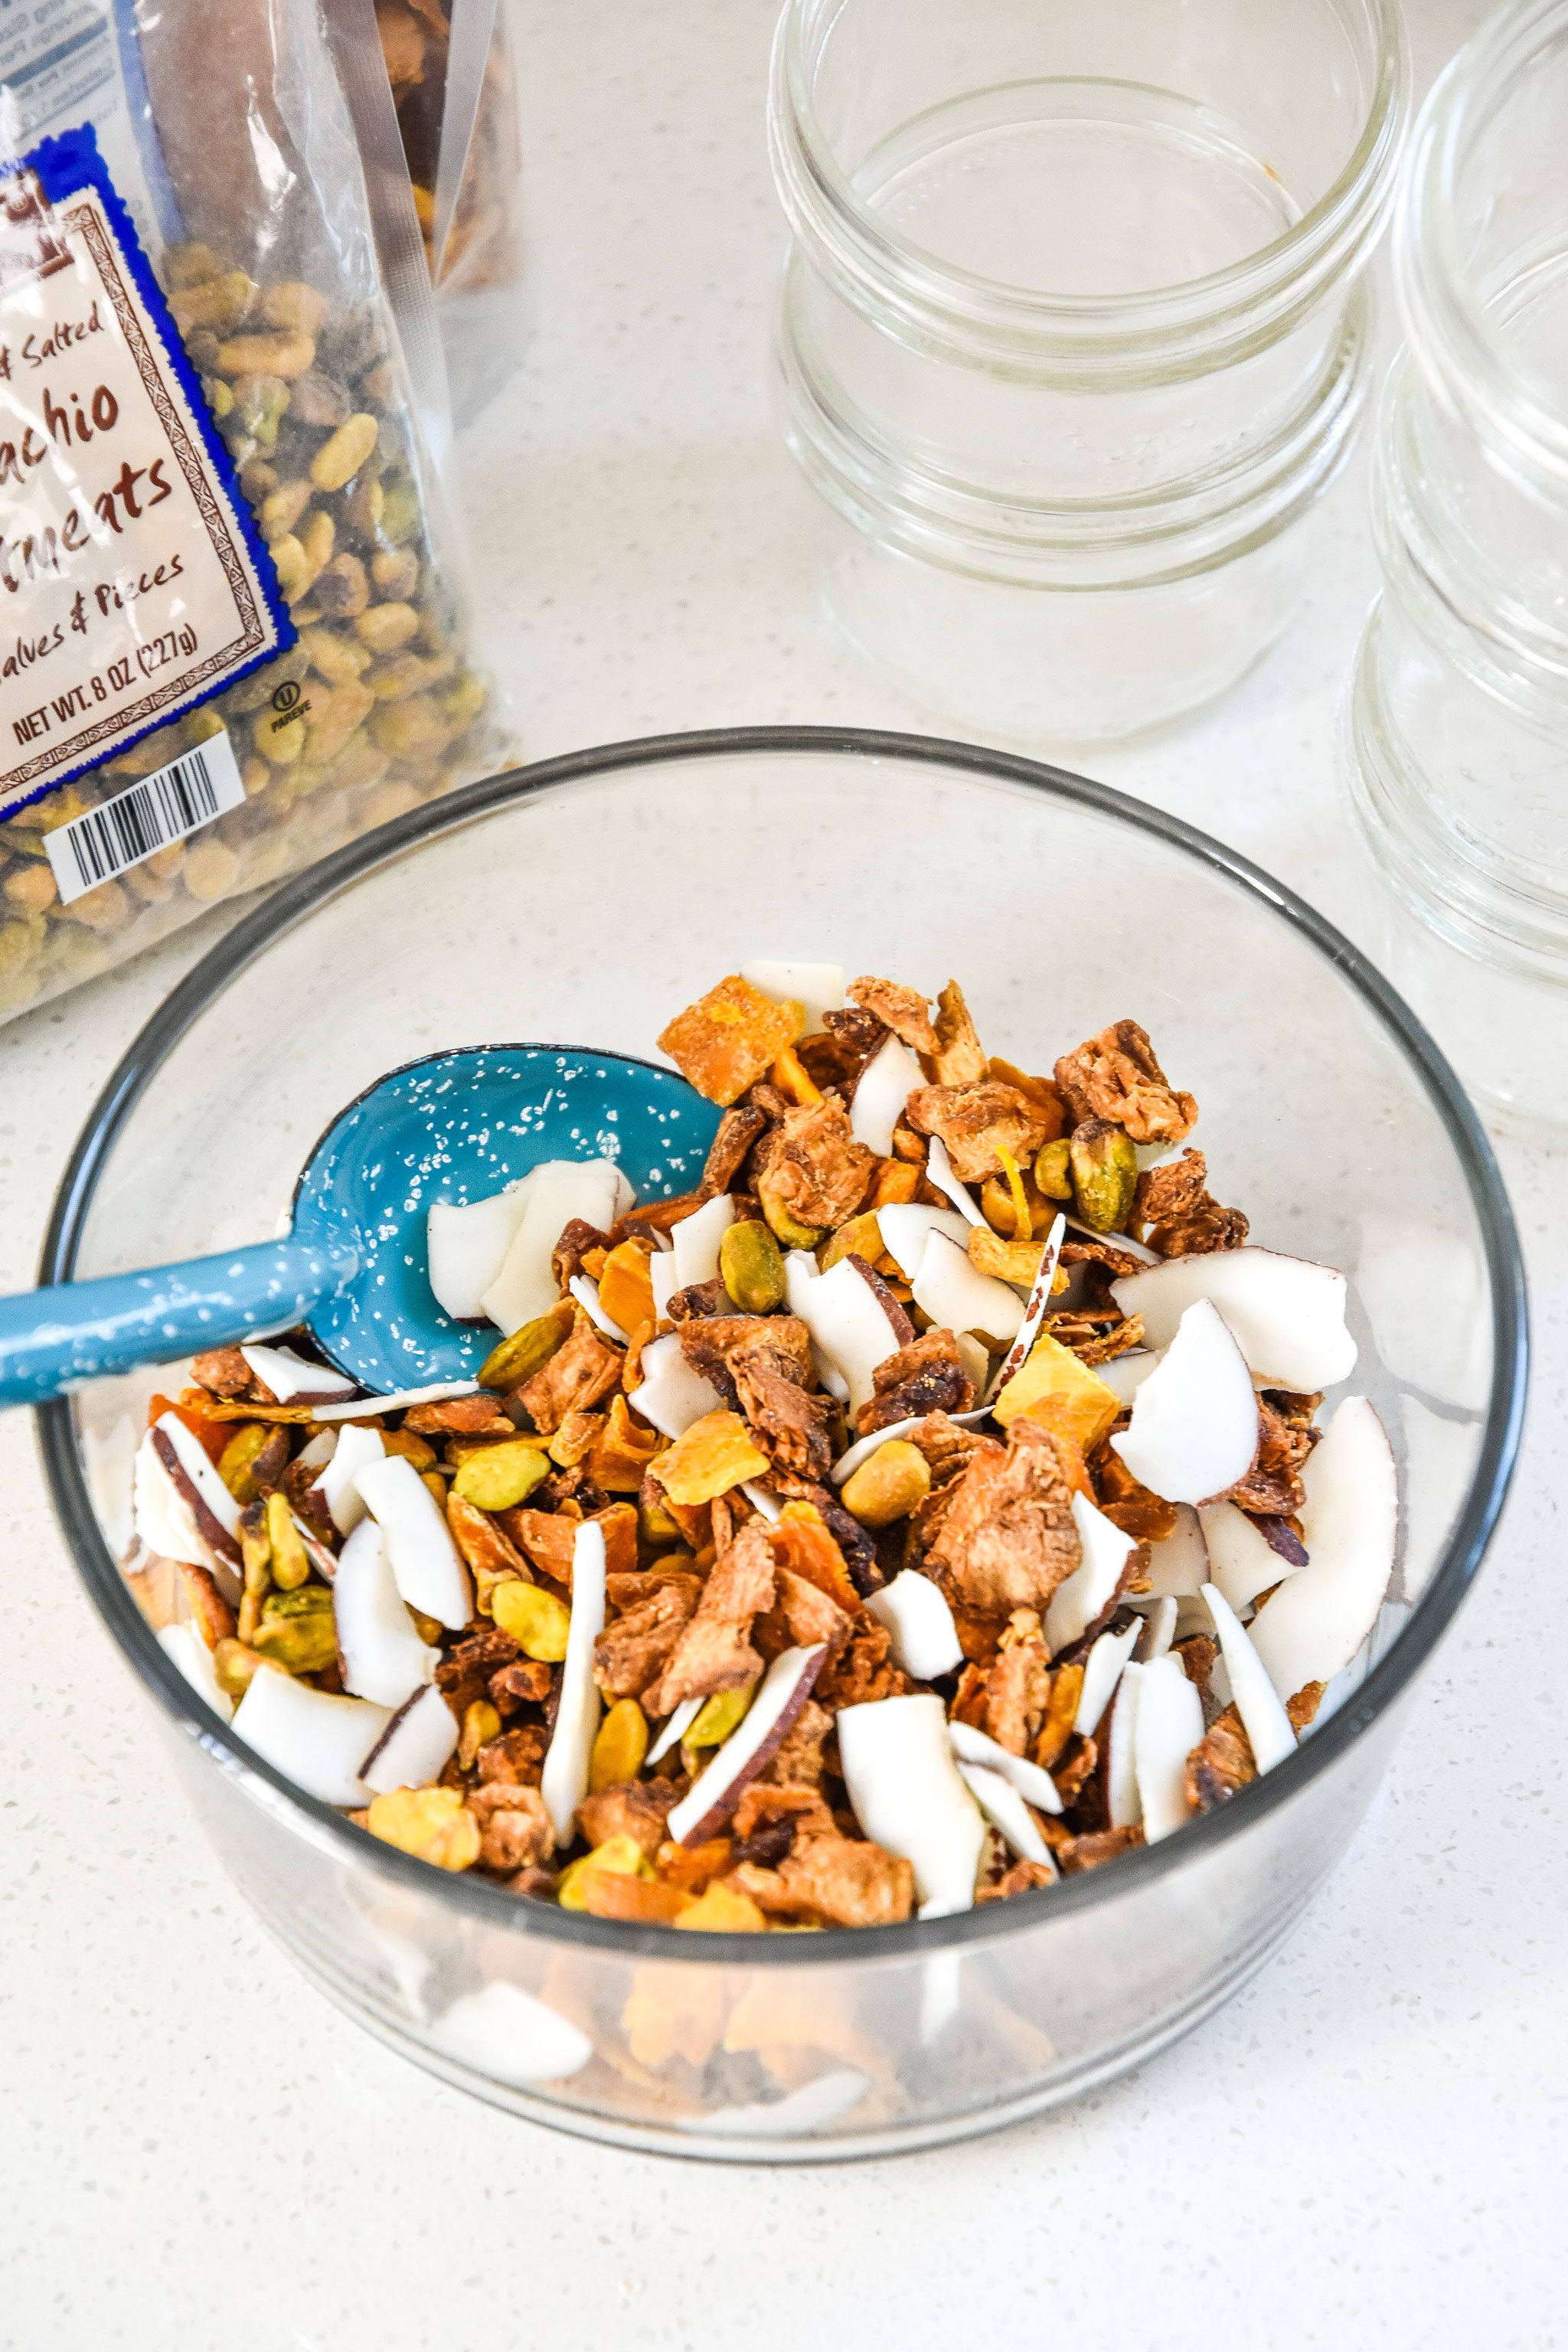 the tropical dried fruit trail mix after being mixed up in a bowl